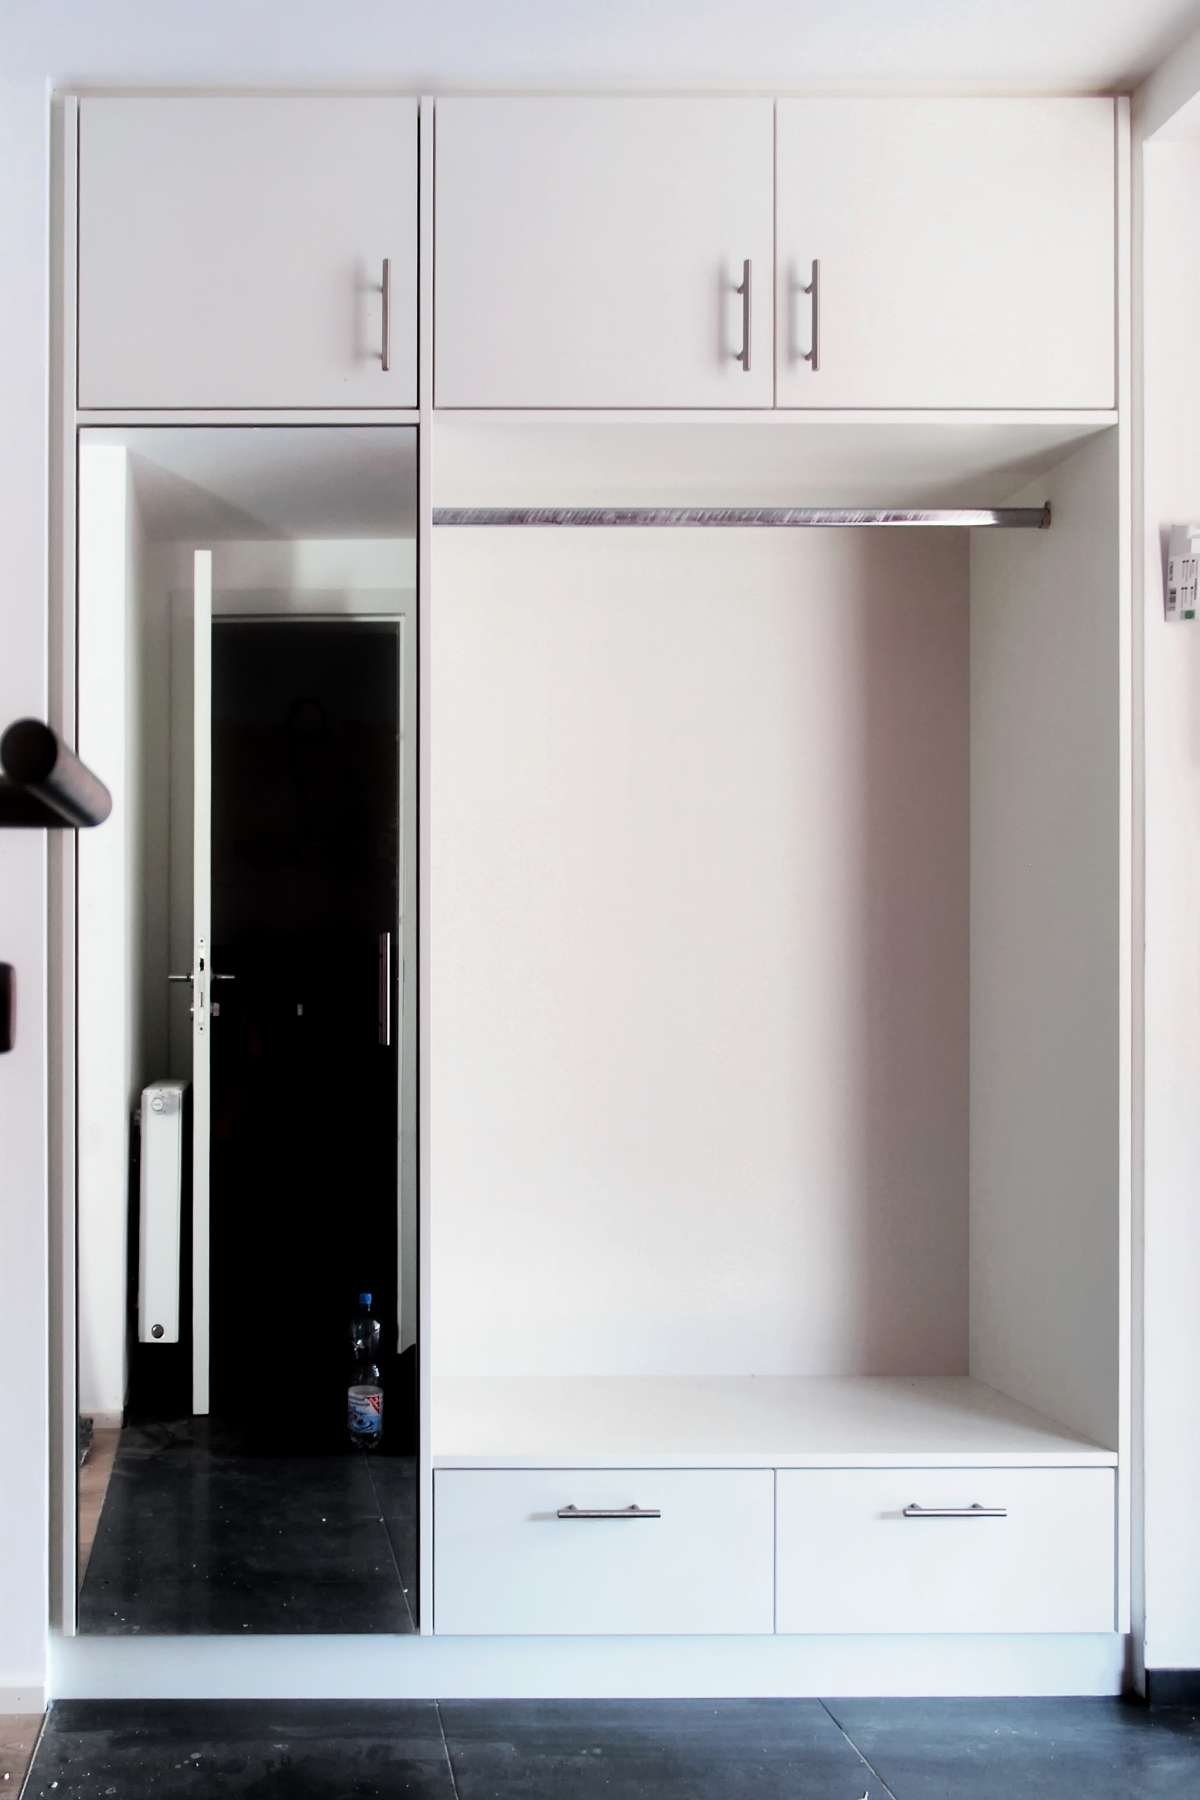 garderobe fichte awesome alter ca leipzig with garderobe fichte garderobe flur mbel paris dm. Black Bedroom Furniture Sets. Home Design Ideas